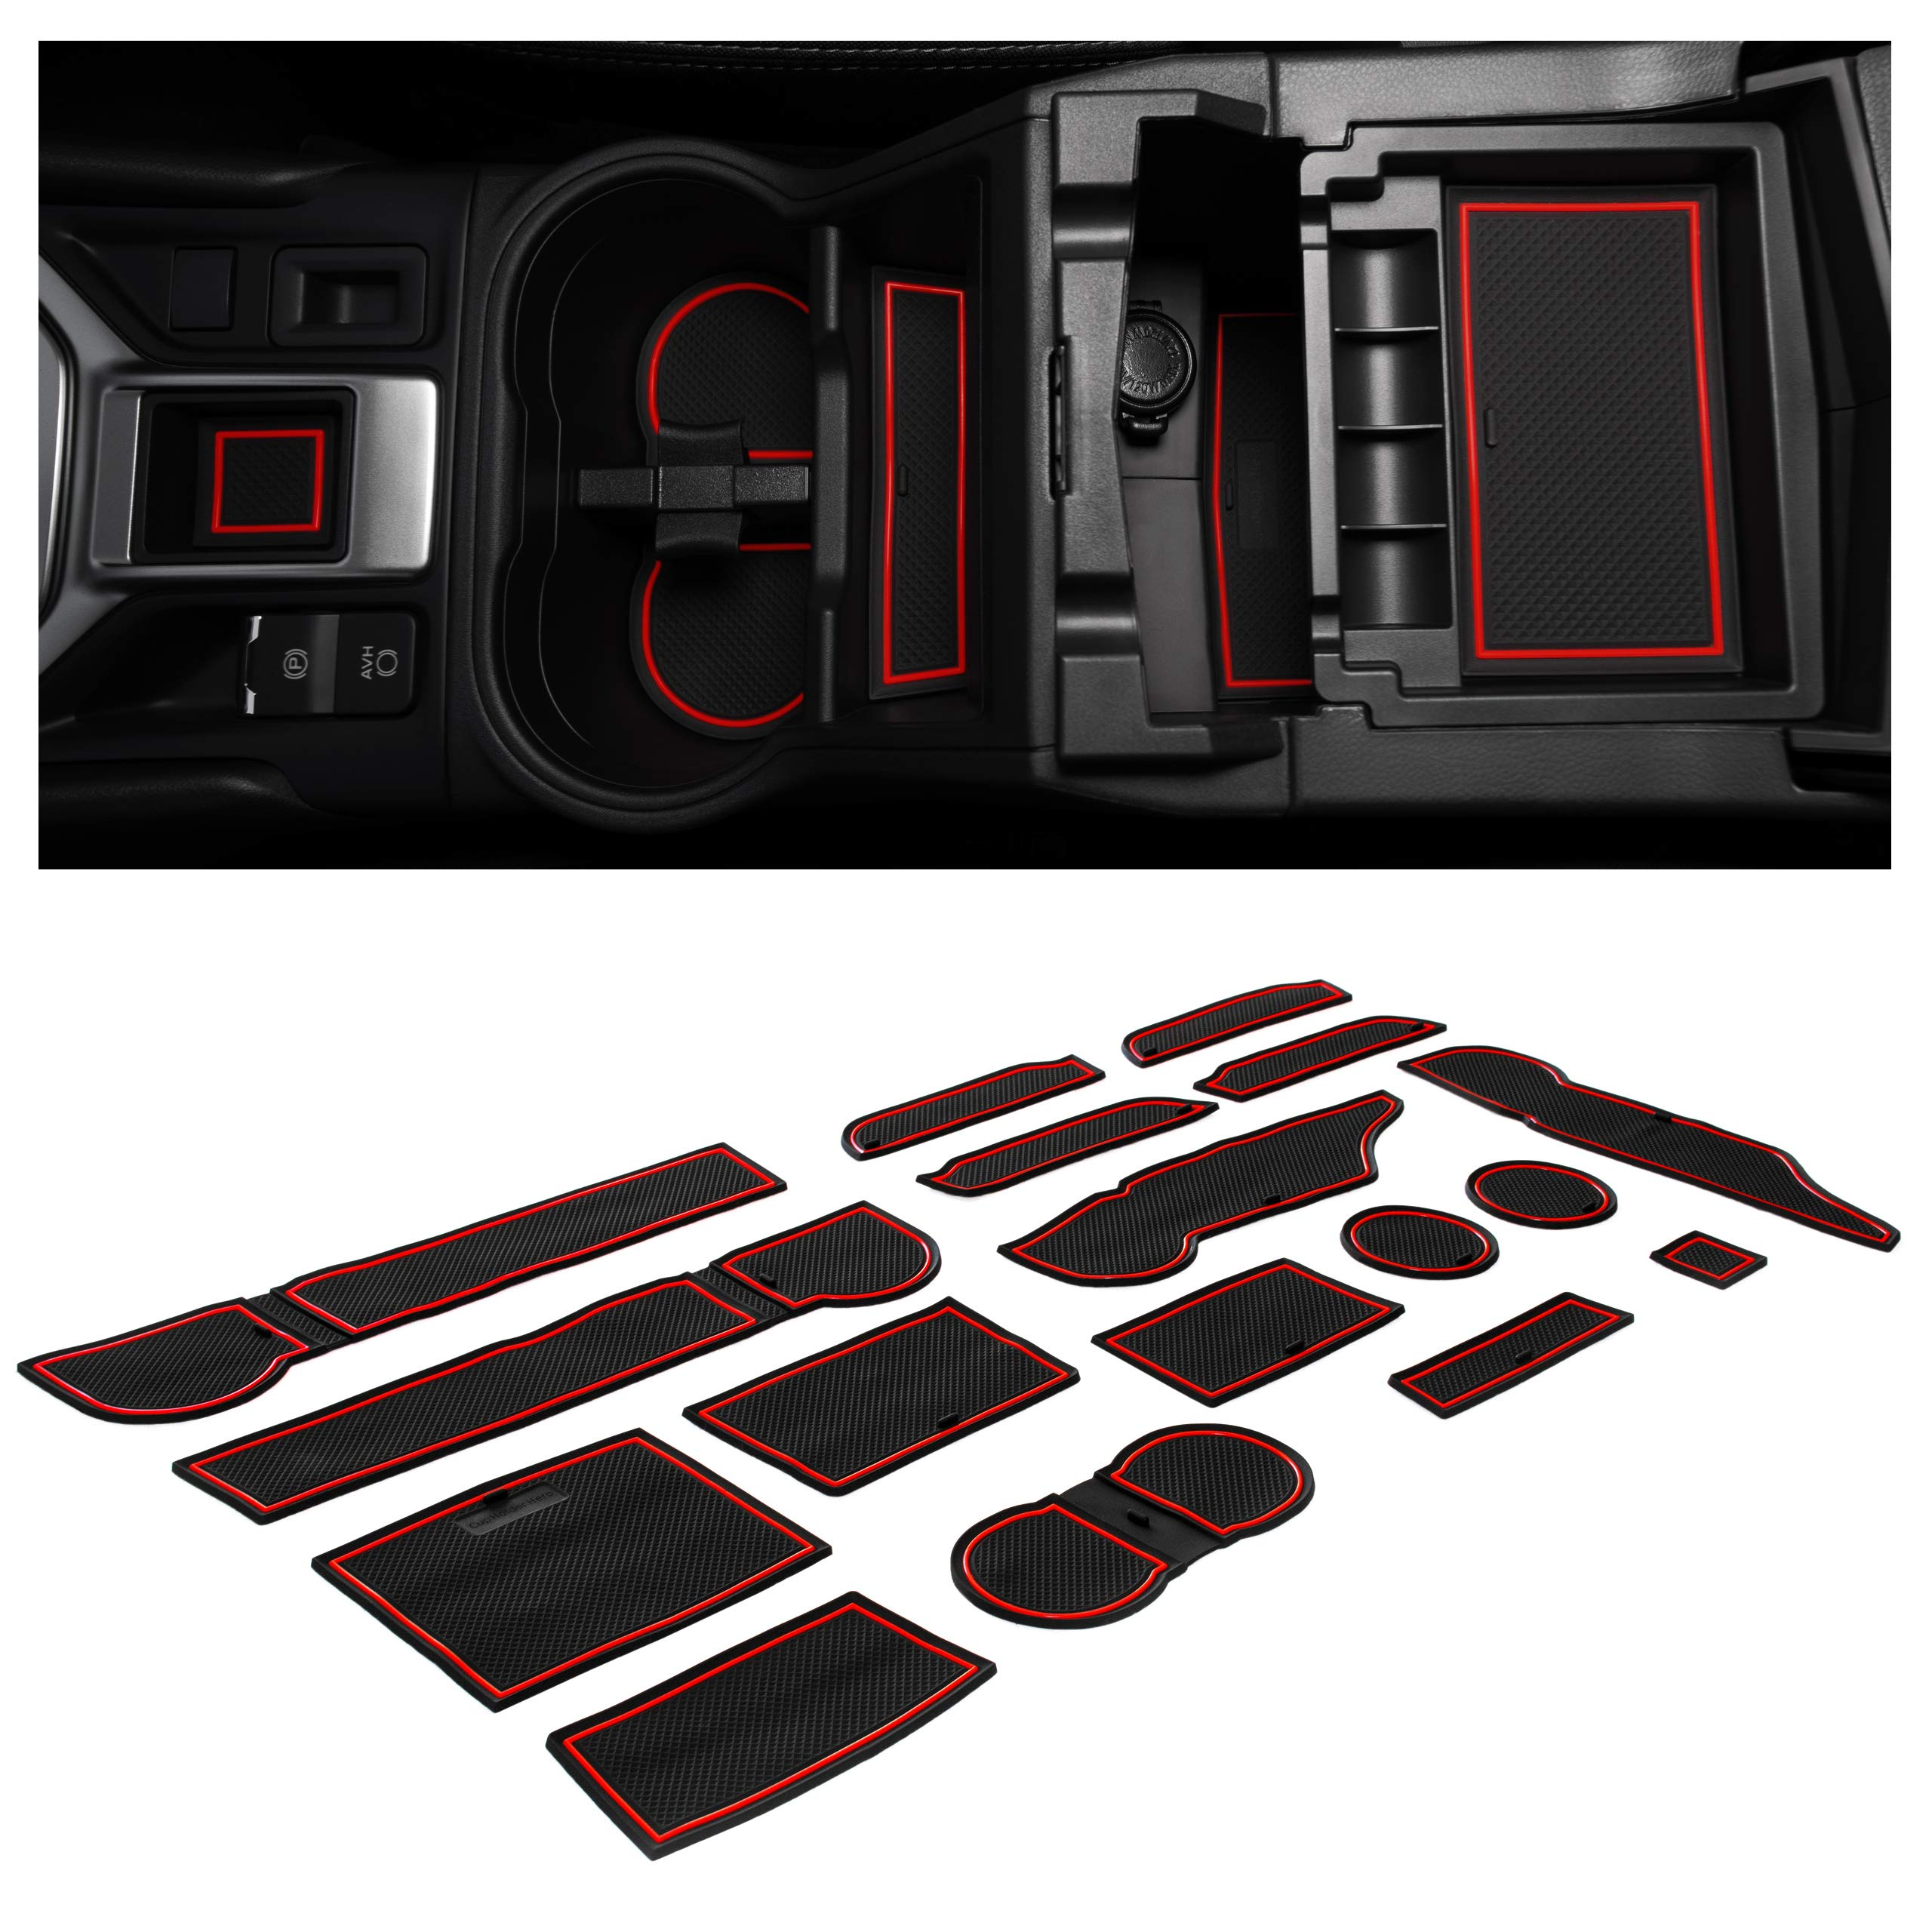 CupHolderHero for Subaru Forester Accessories 2019-2021 Premium Custom Interior Non-Slip Anti Dust Cup Holder Inserts, Center Console Liner Mats, Door Pocket Liners 17-pc Set (Red Trim)